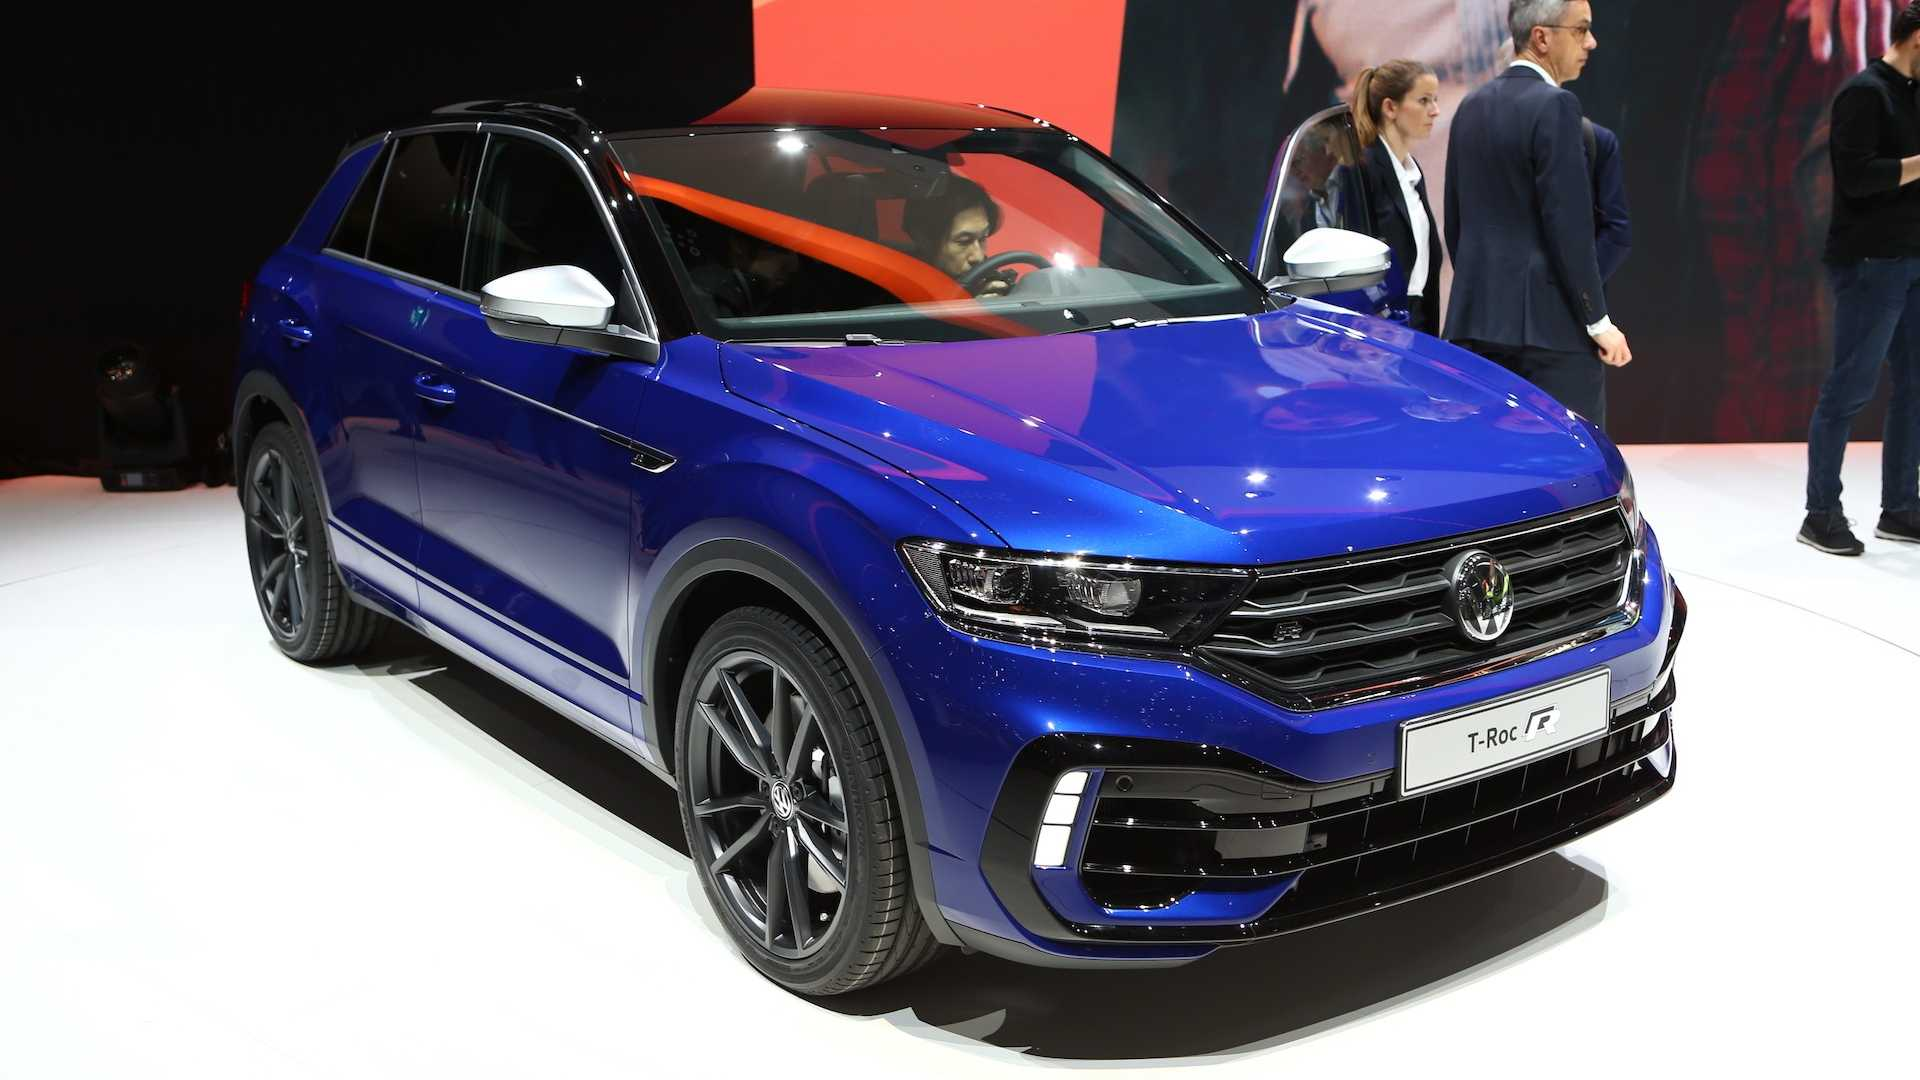 Vw T Roc R Powers Into Geneva With 300 Hp And Awd